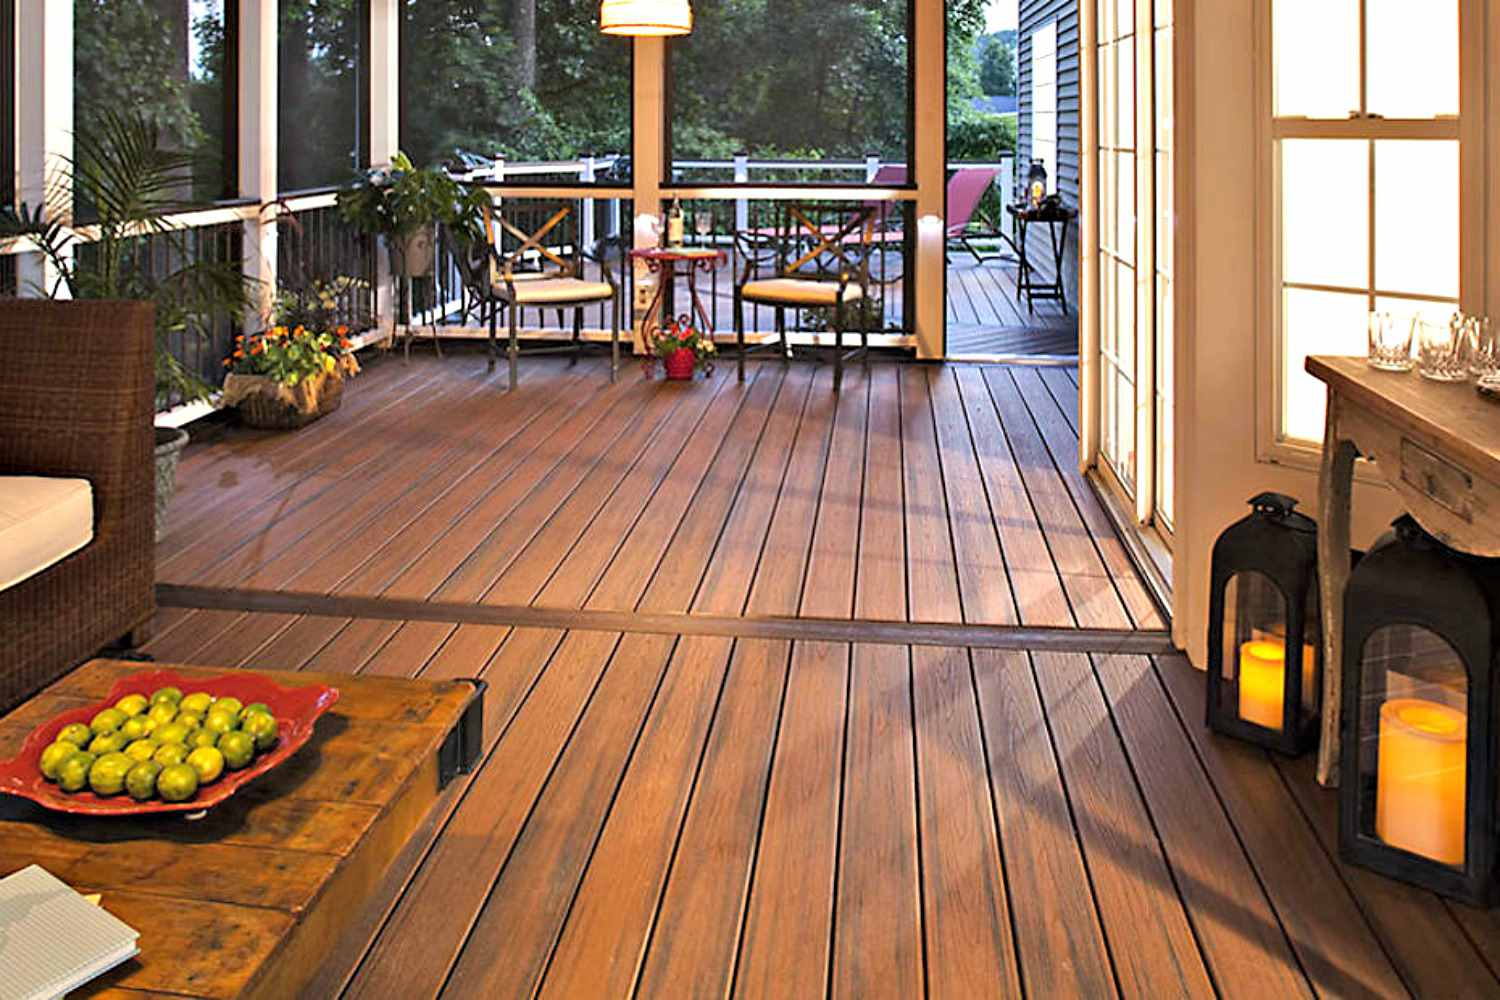 Beautiful Trex decking.